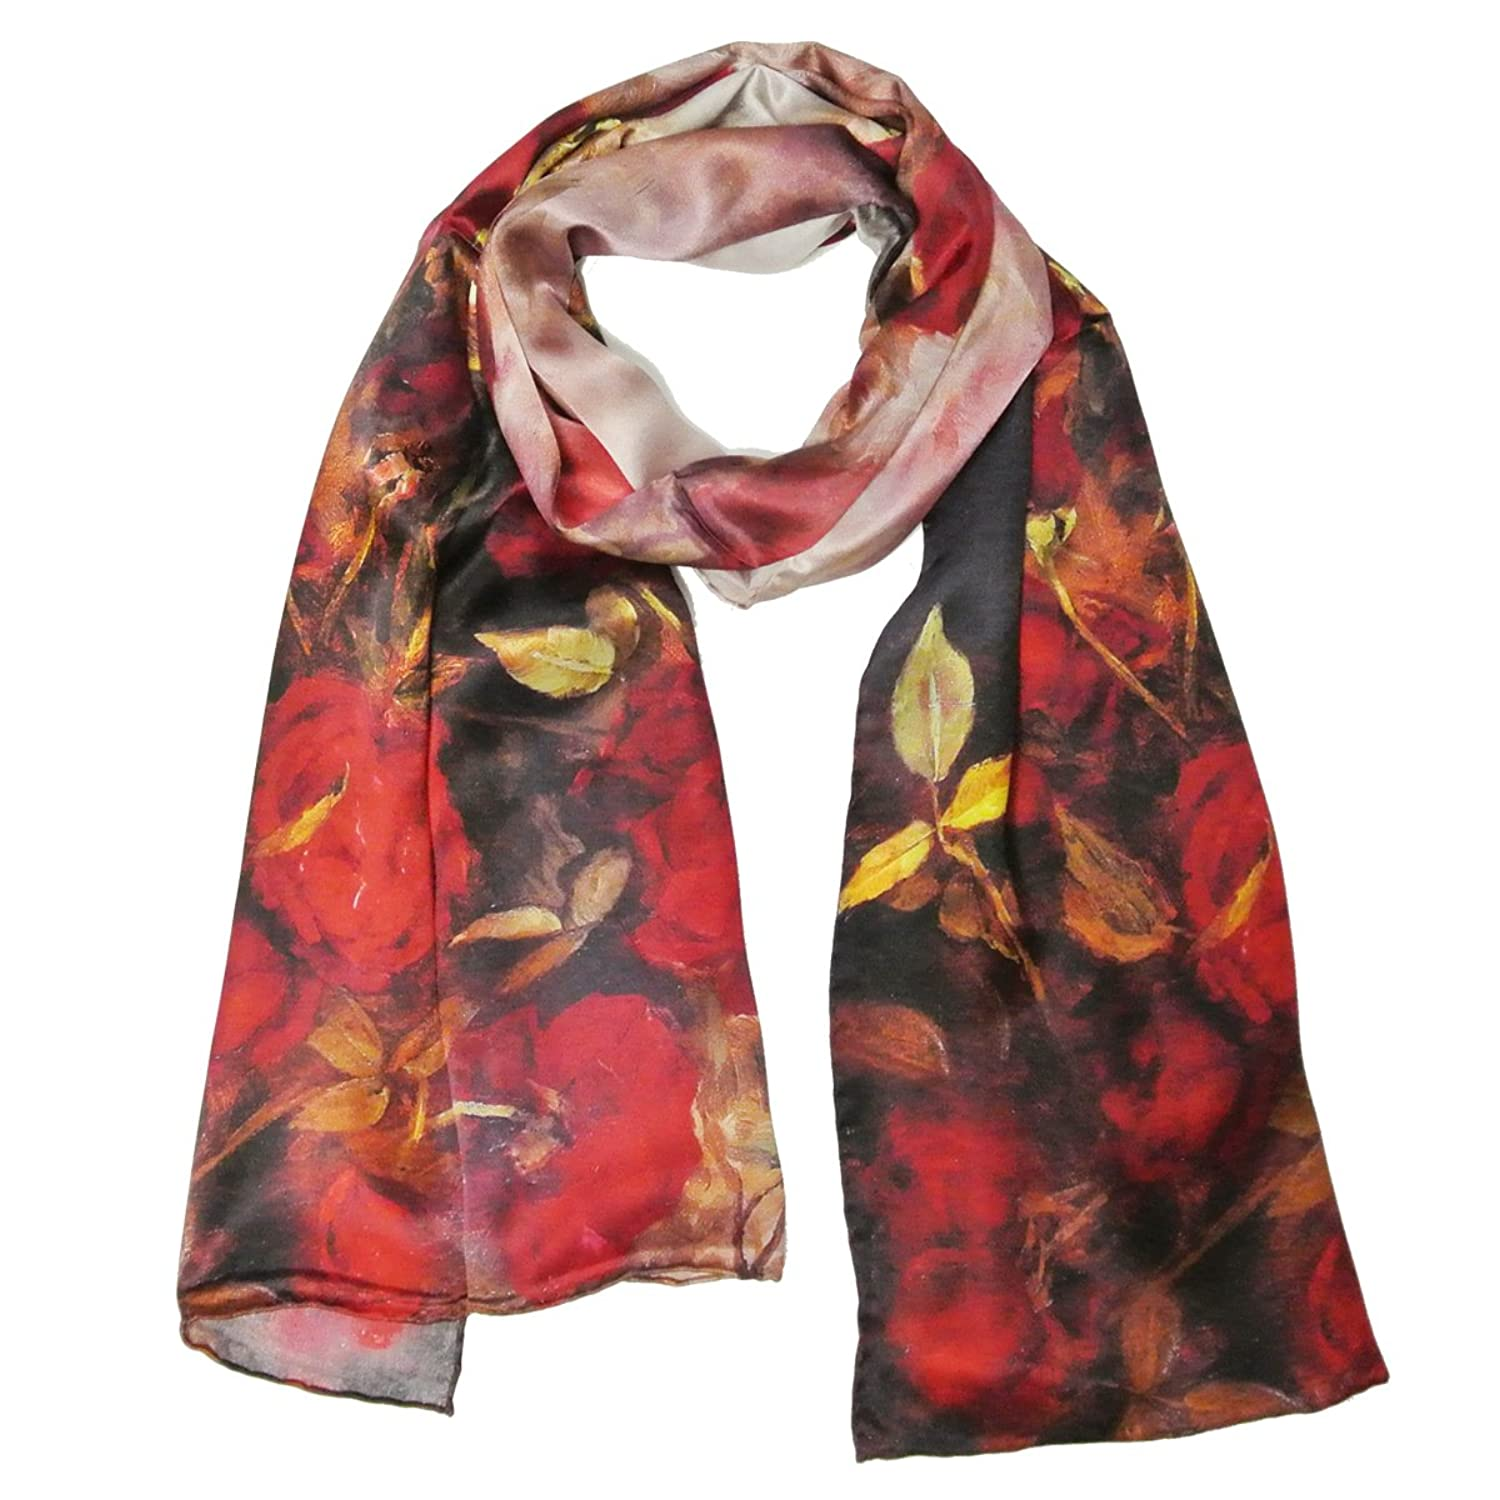 Allydrew Luxurious 100% Charmeuse Silk Floral Painting Long Scarf with Hand Rolled Edges, Red Roses